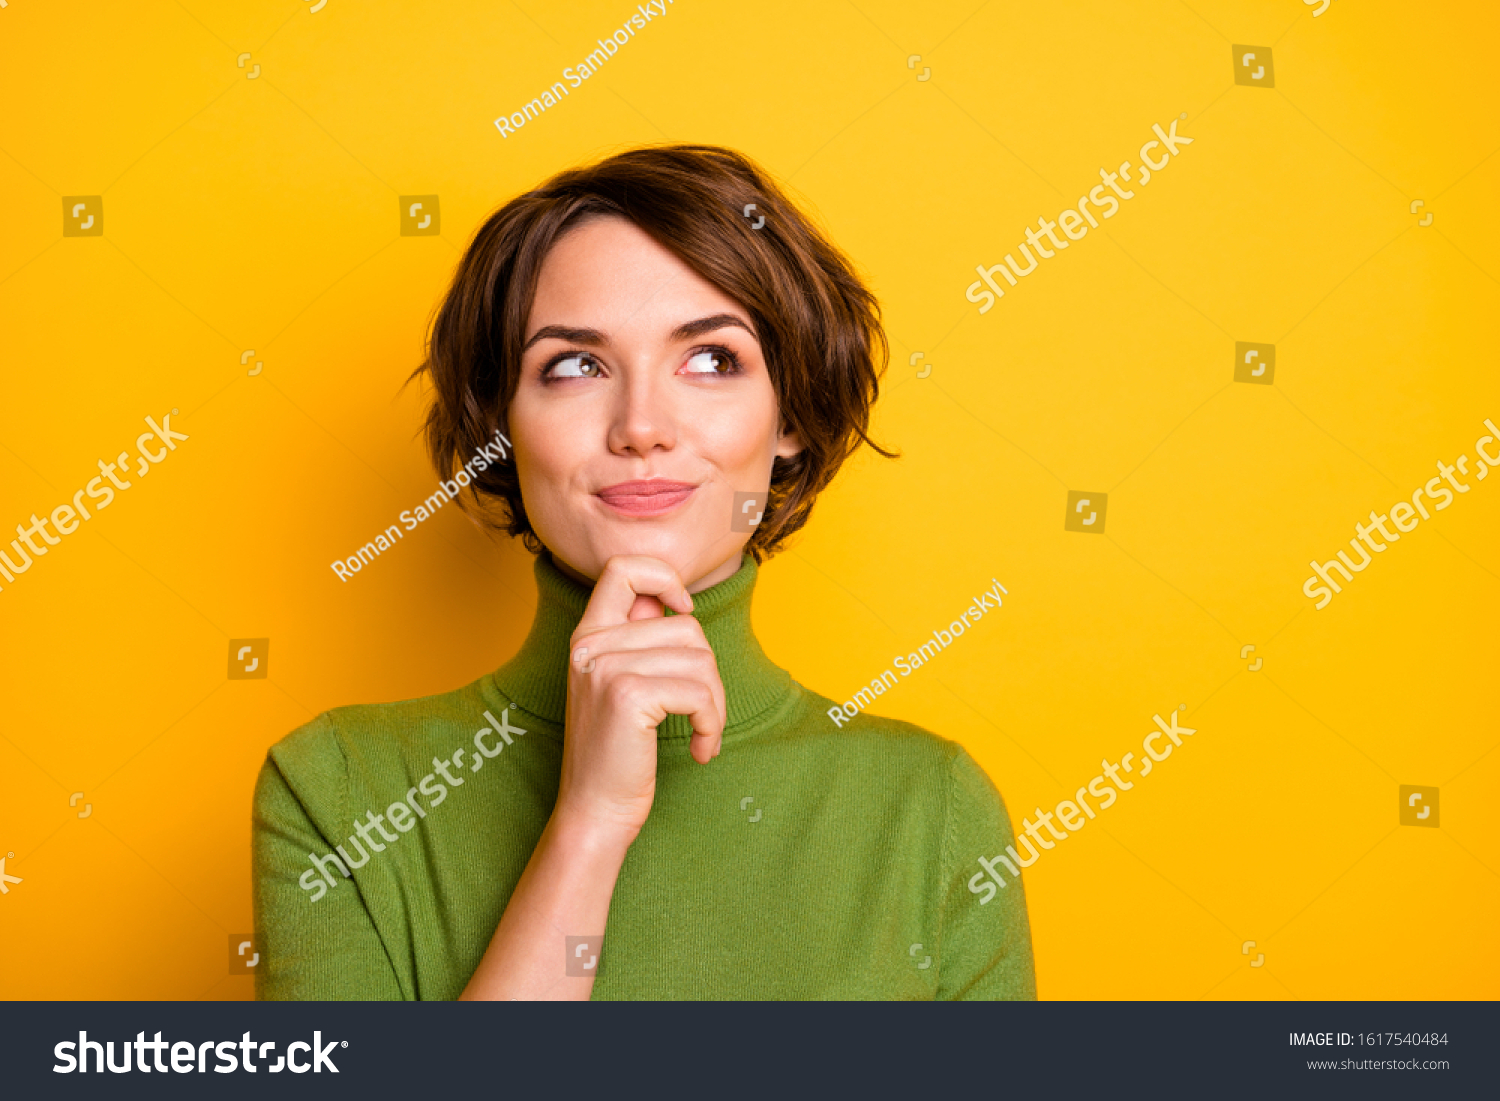 Closeup photo of amazing short hairdo lady looking up empty space deep thinking creative person arm on chin wear casual green turtleneck isolated yellow color background #1617540484